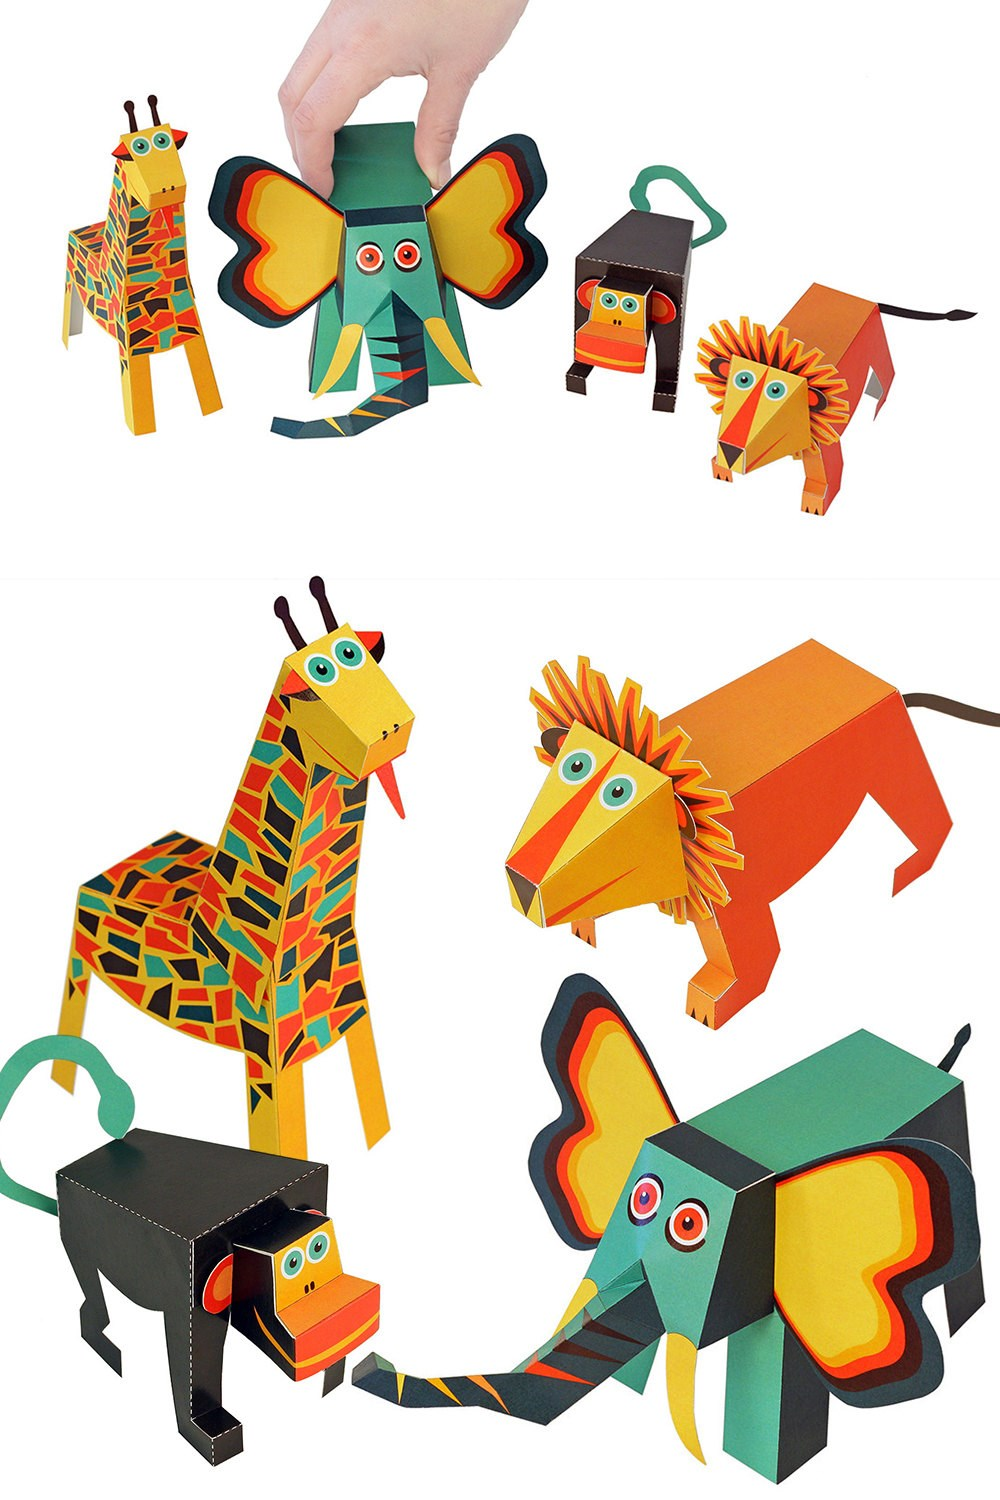 PUKACA Jungle Animals Paper Toys - DIY Paper Craft Kit - 3D Paper Animals - 4 Animals